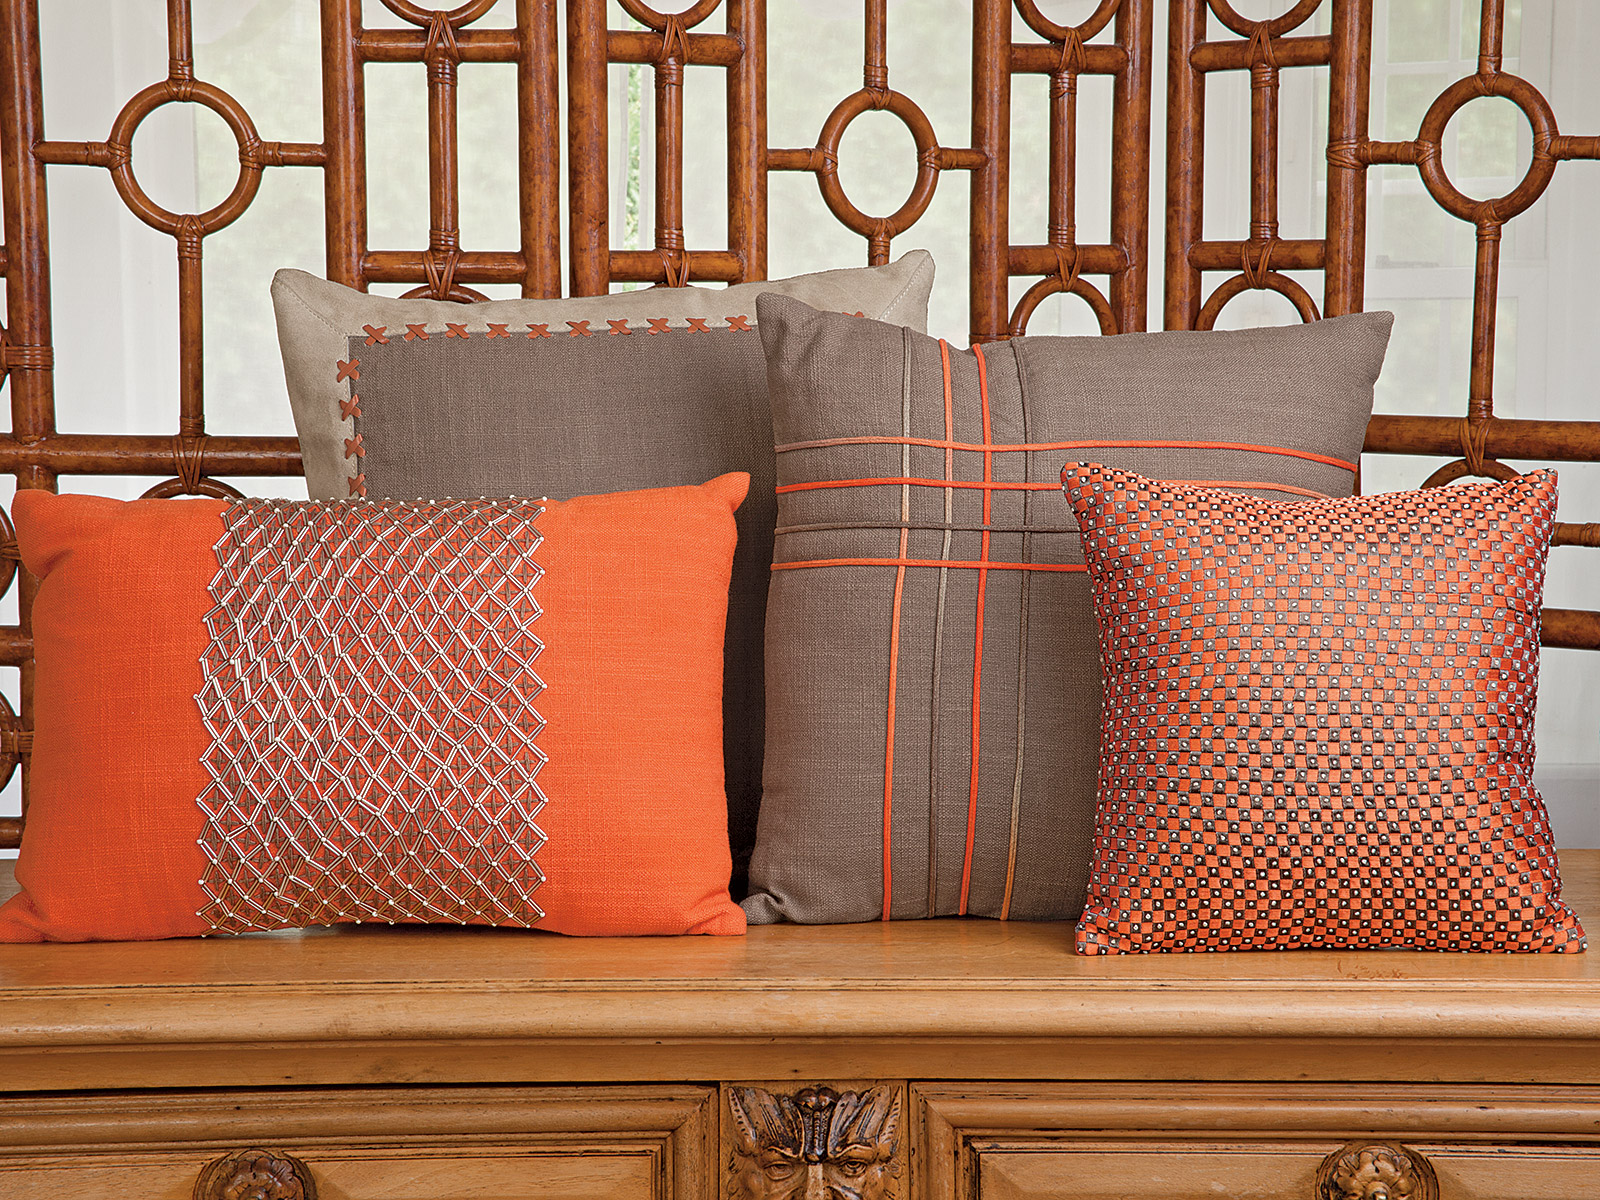 Home Decorators Collection Promo Code 2014 28 Images